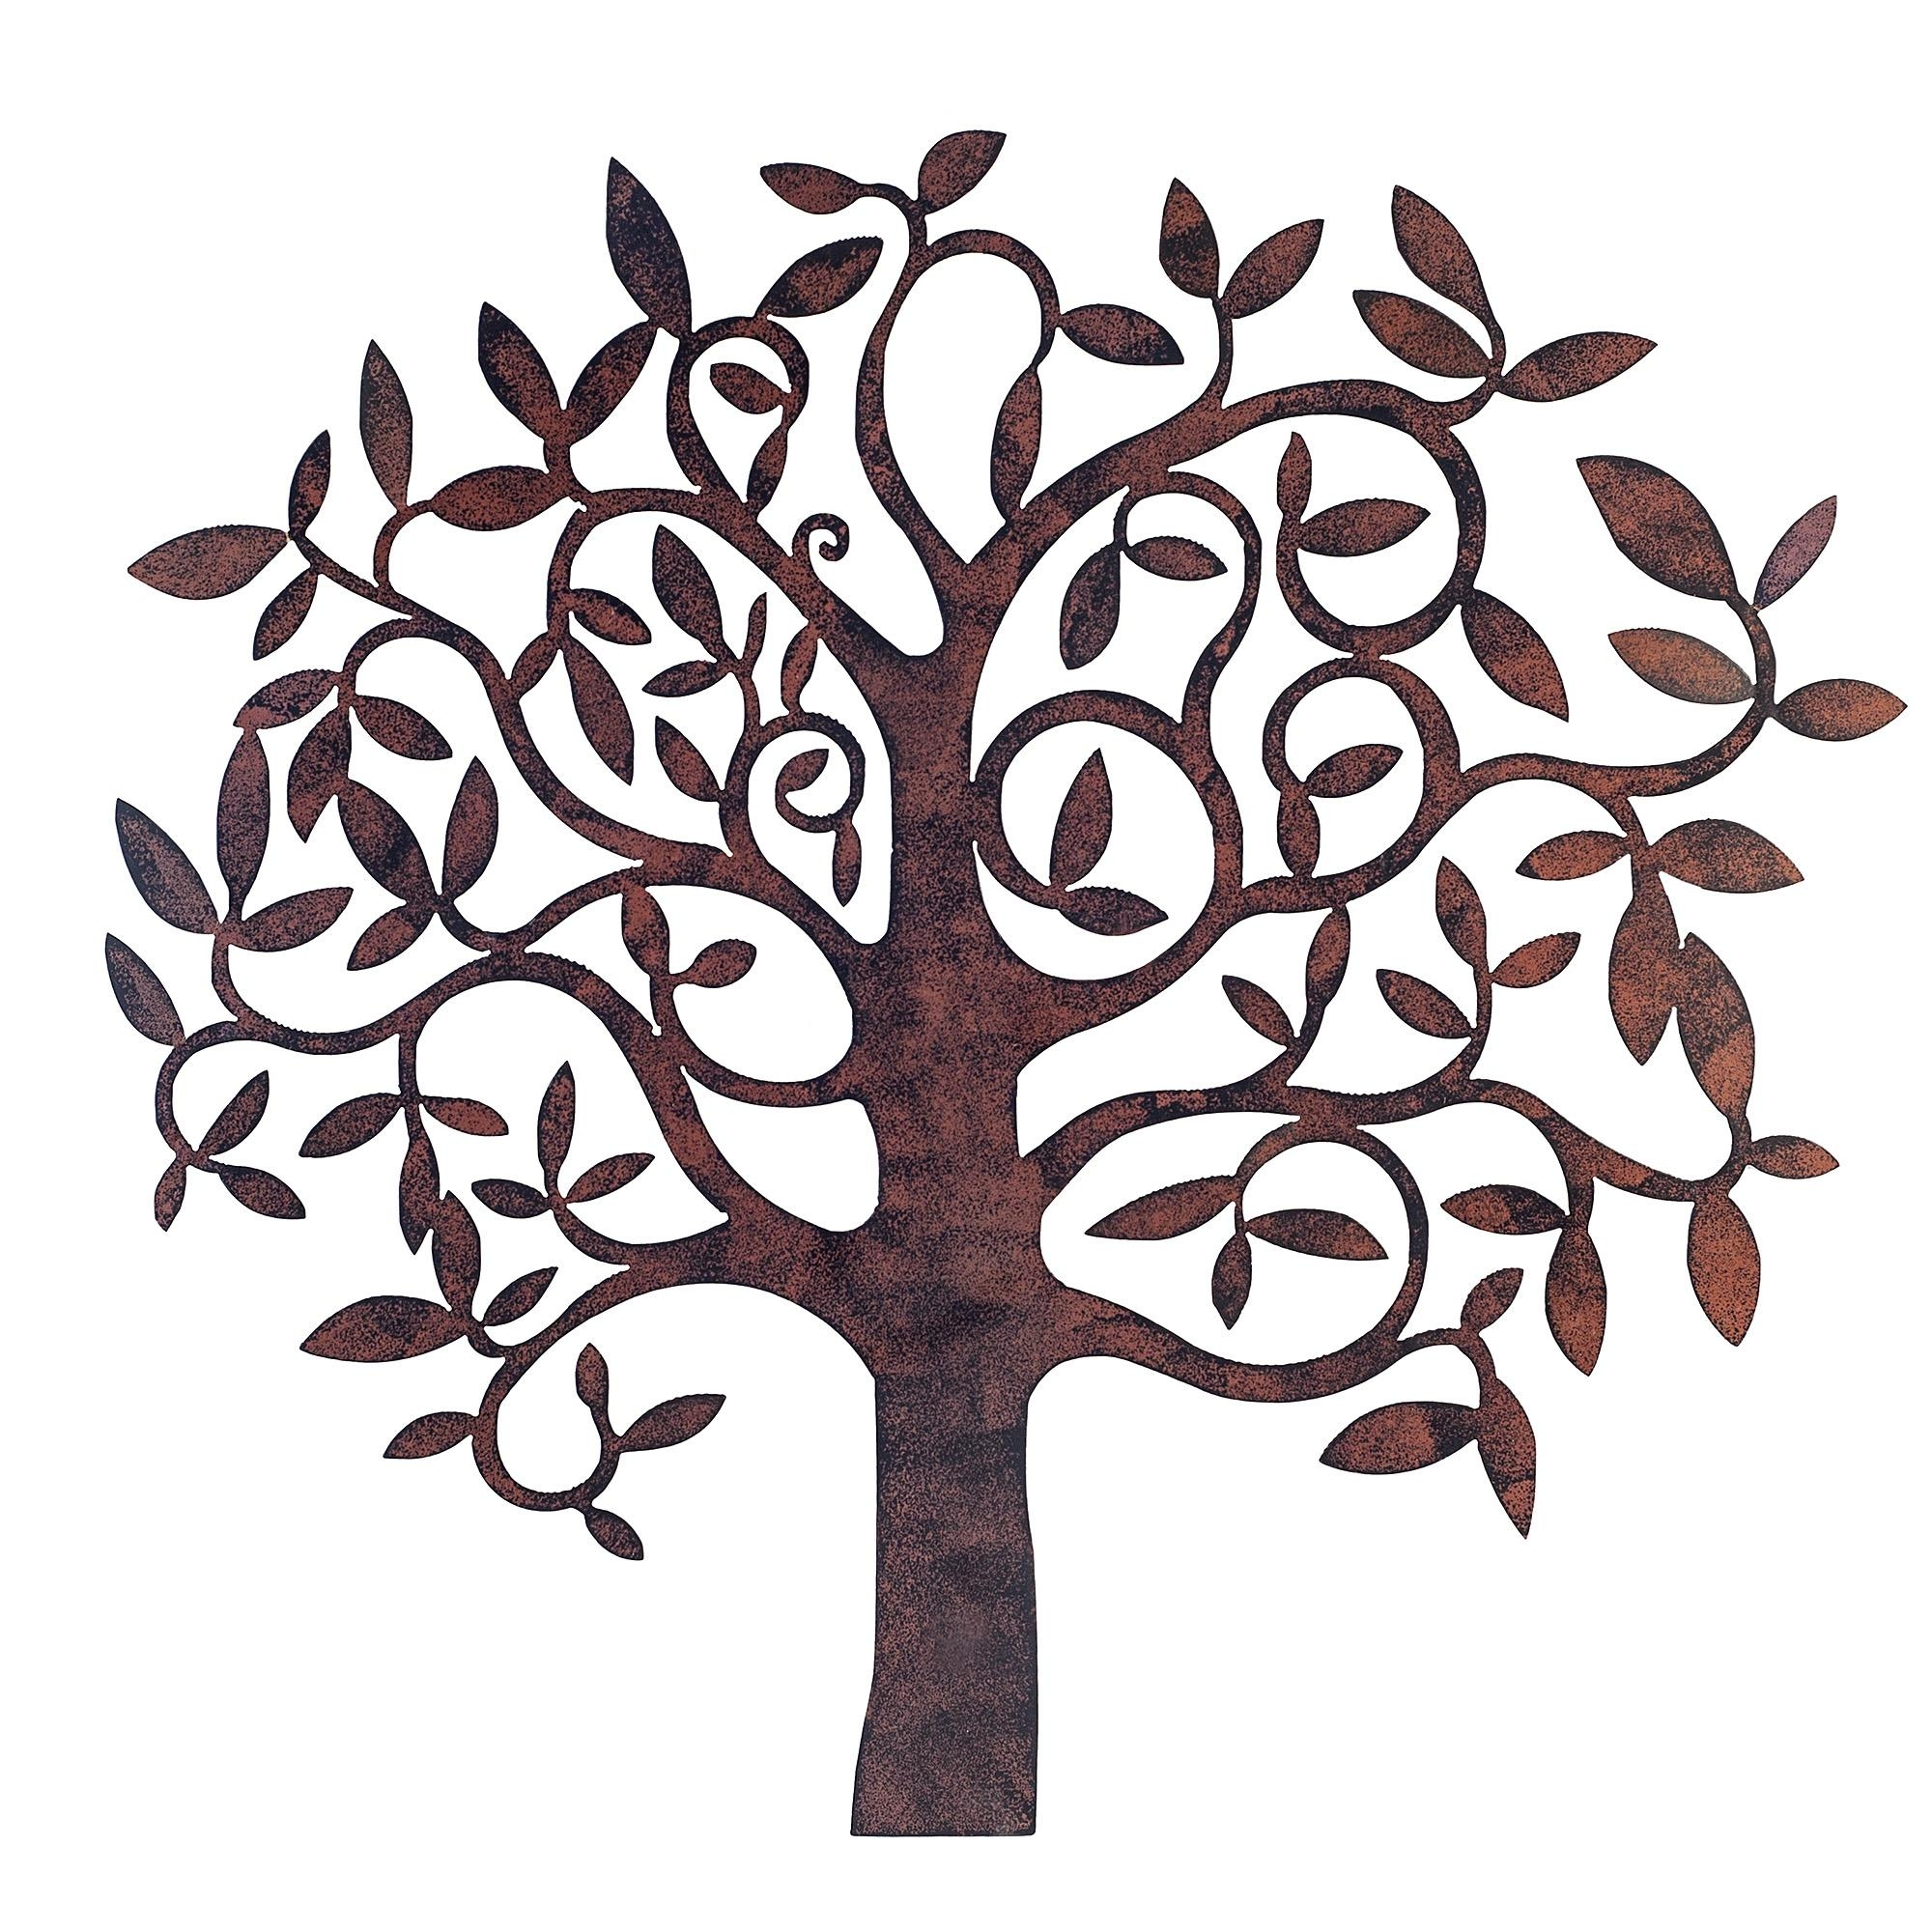 Stupendous Large Metal Tree Wall Decoration 22 Giant Metal Tree In Outdoor Metal Art For Walls (View 13 of 20)